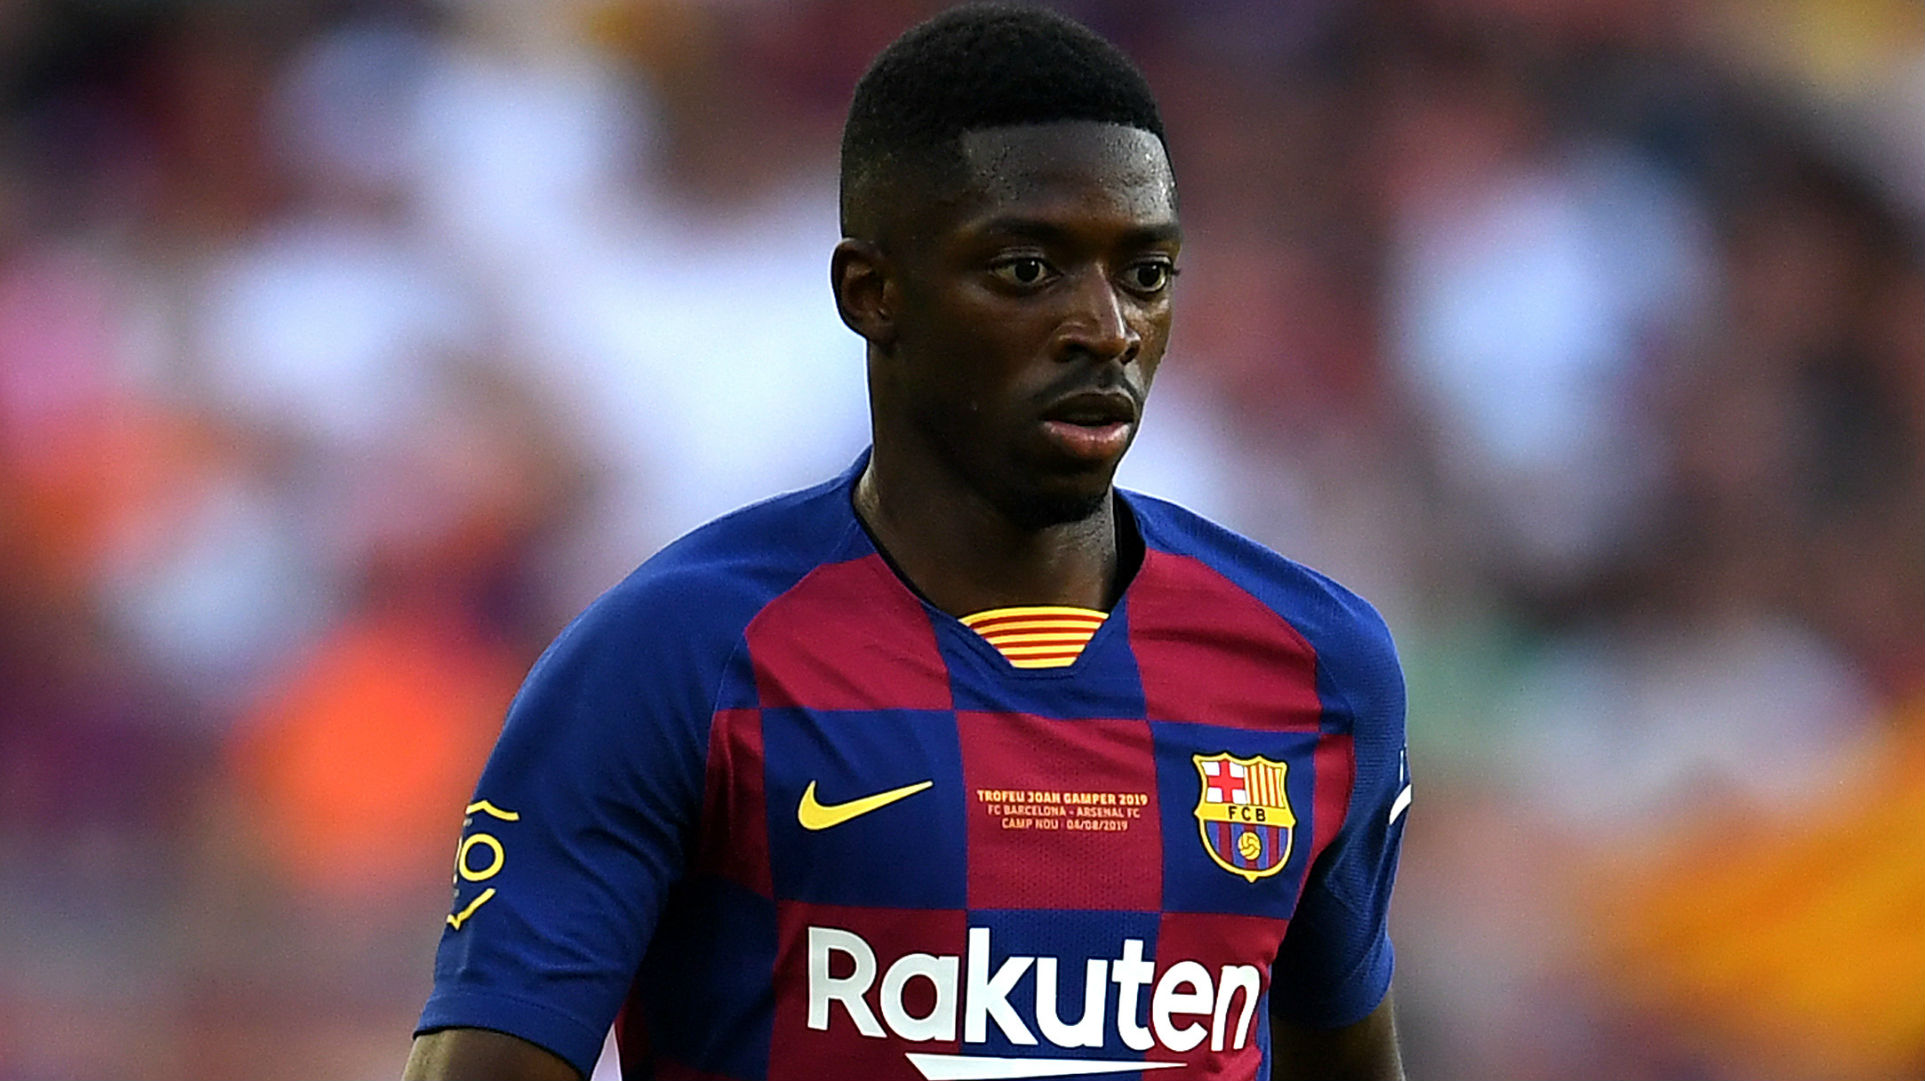 Dembele does not care if Neymar joins Barcelona, says agent